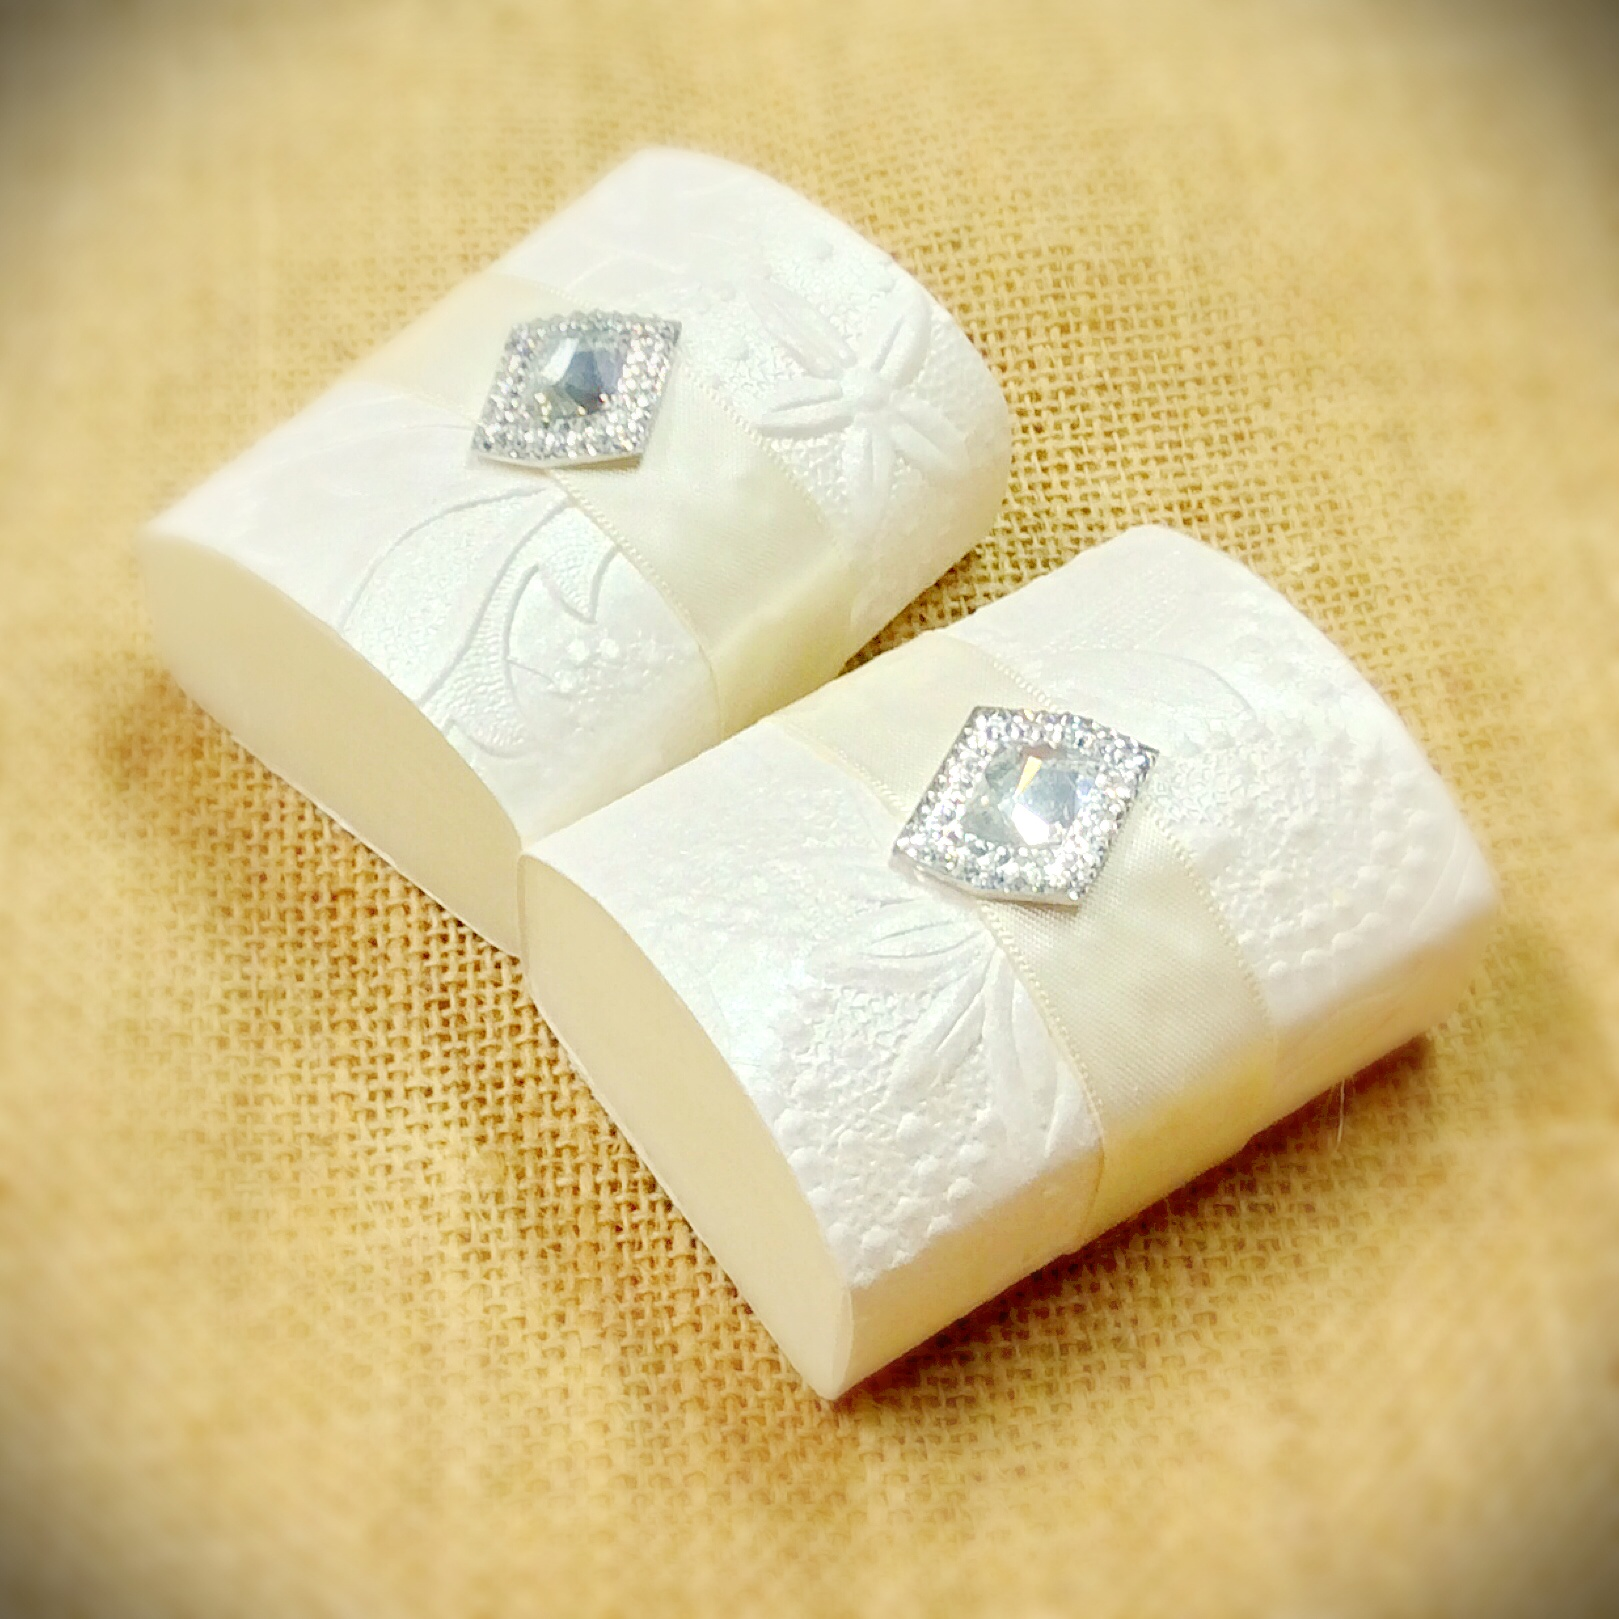 wedding-or-event-favor-of-1-large-goats-milk-soap-with-embossed-paper-and-embellishment-on-top.jpg